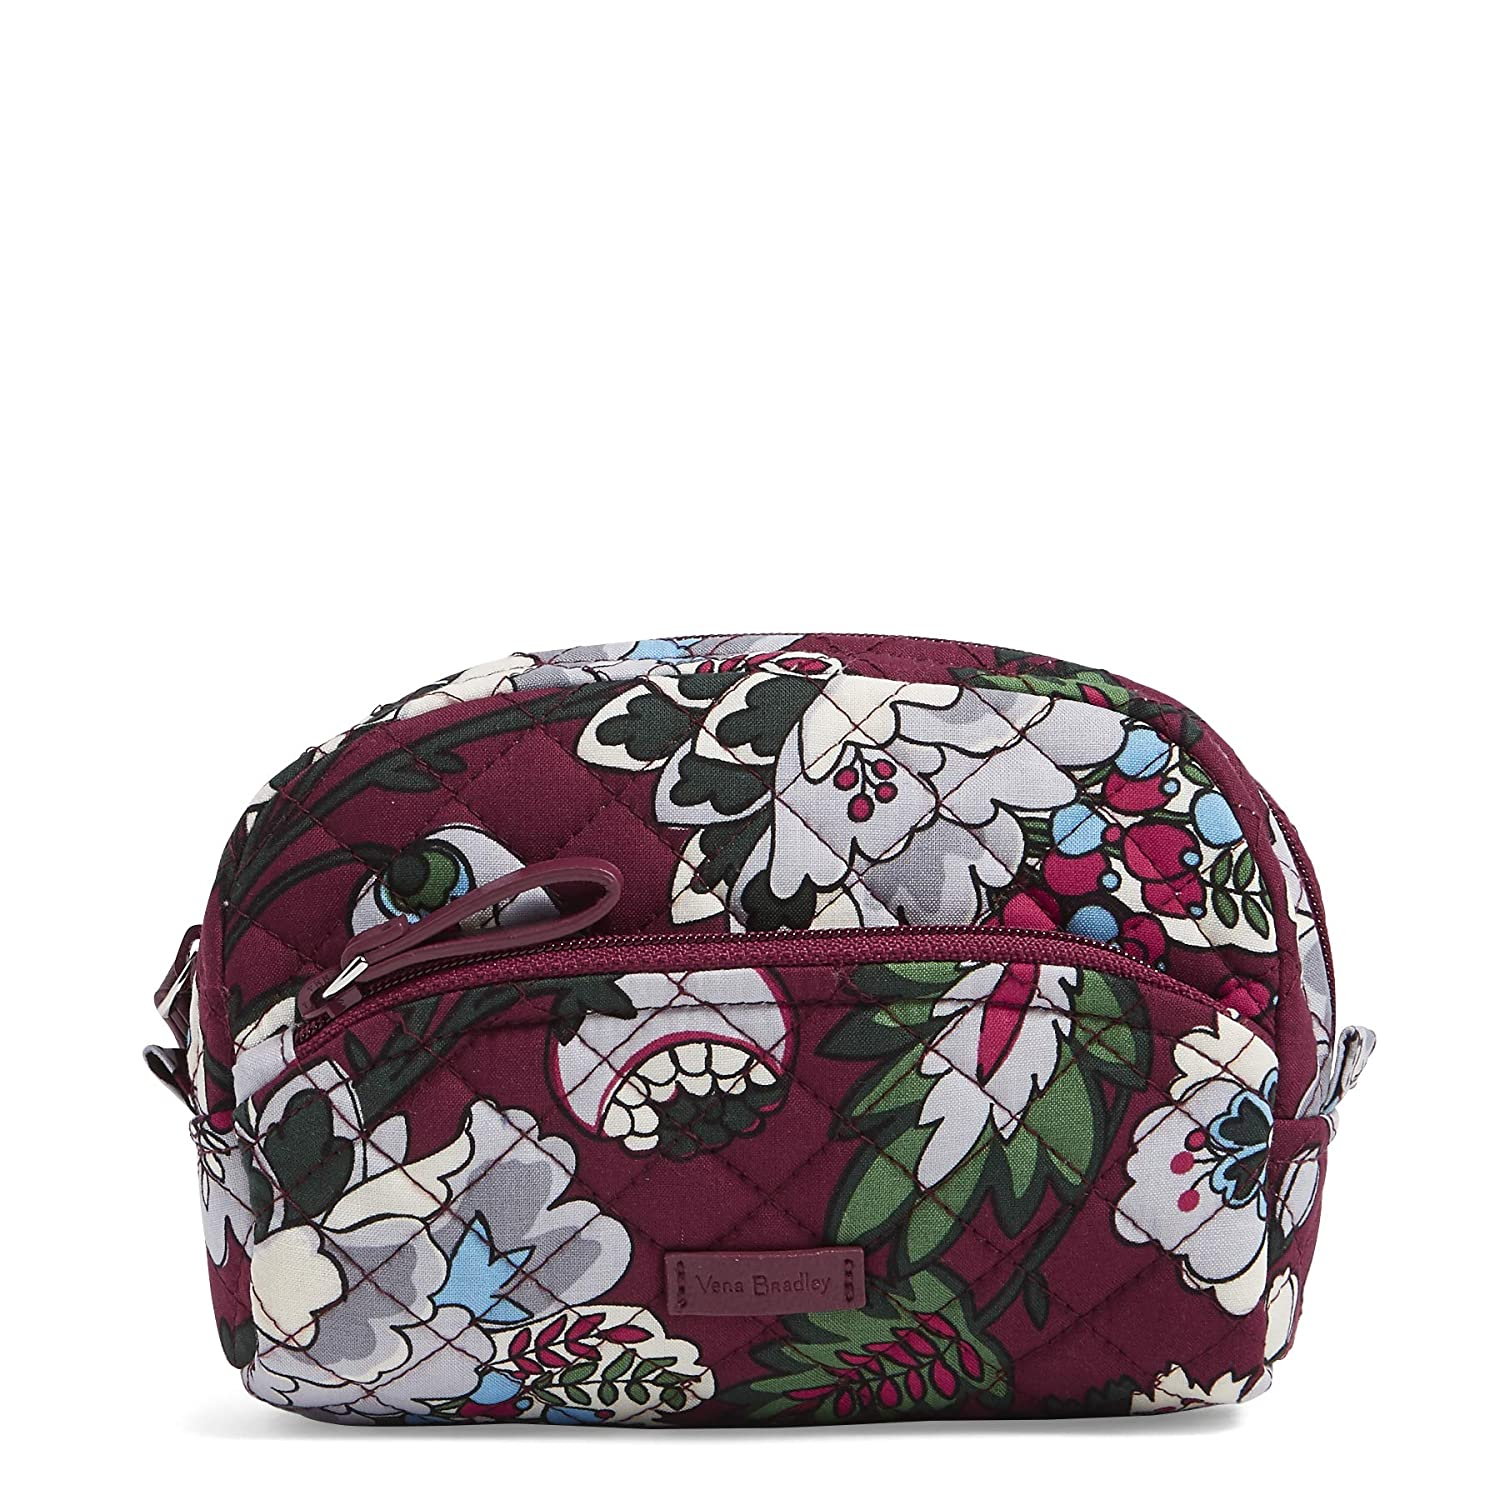 Vera Bradley Iconic Mini Cosmetic, Signature Cotton